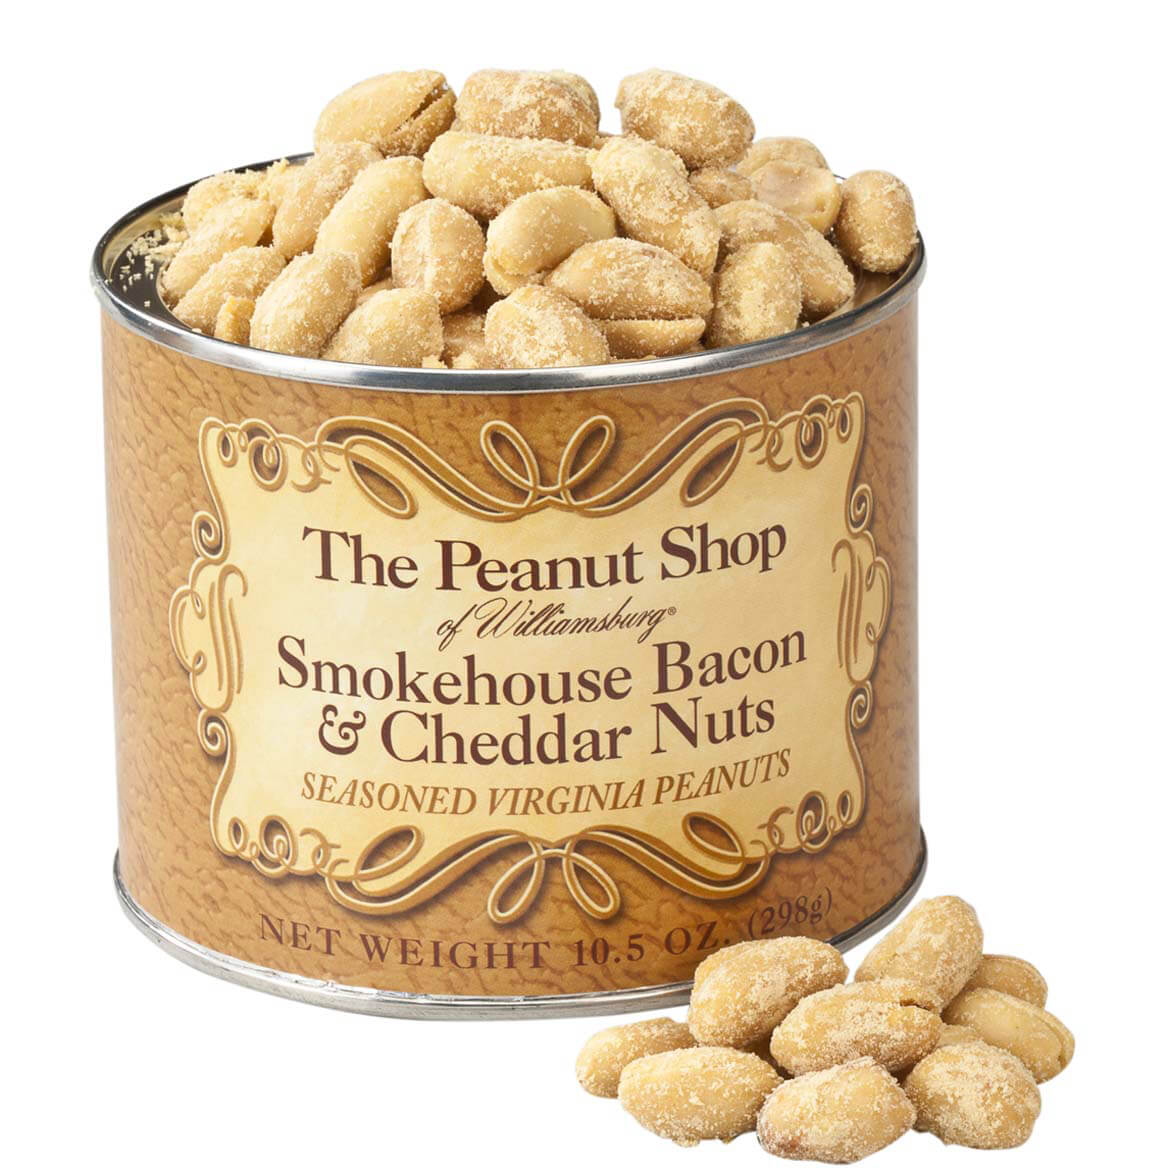 The Peanut Shop® Smokehouse Bacon & Cheddar Peanuts, 10.5oz.